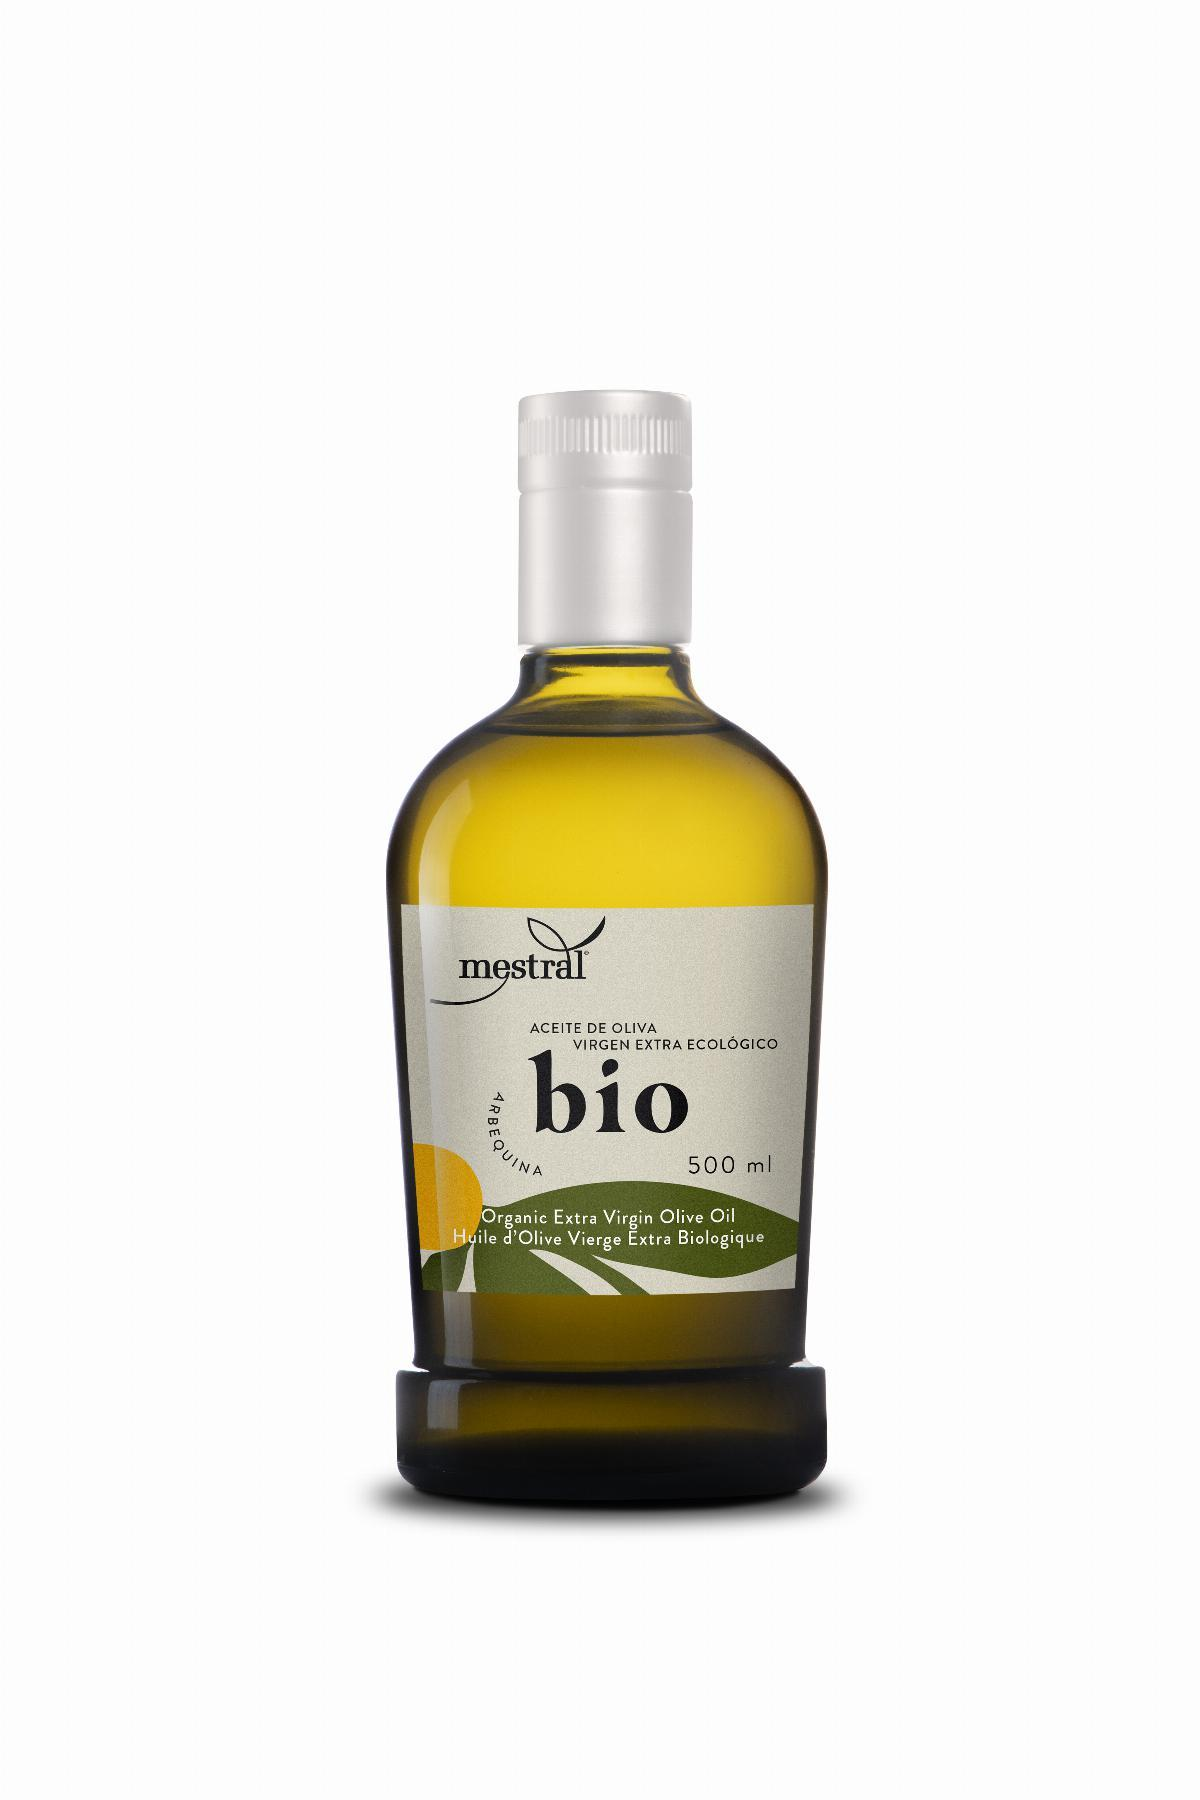 Organic Mestral Extra Virgin Olive Oil glass bottle 500ml - Operator CT 005725 C Controled by ES-ECO-019-CT. UE Farming